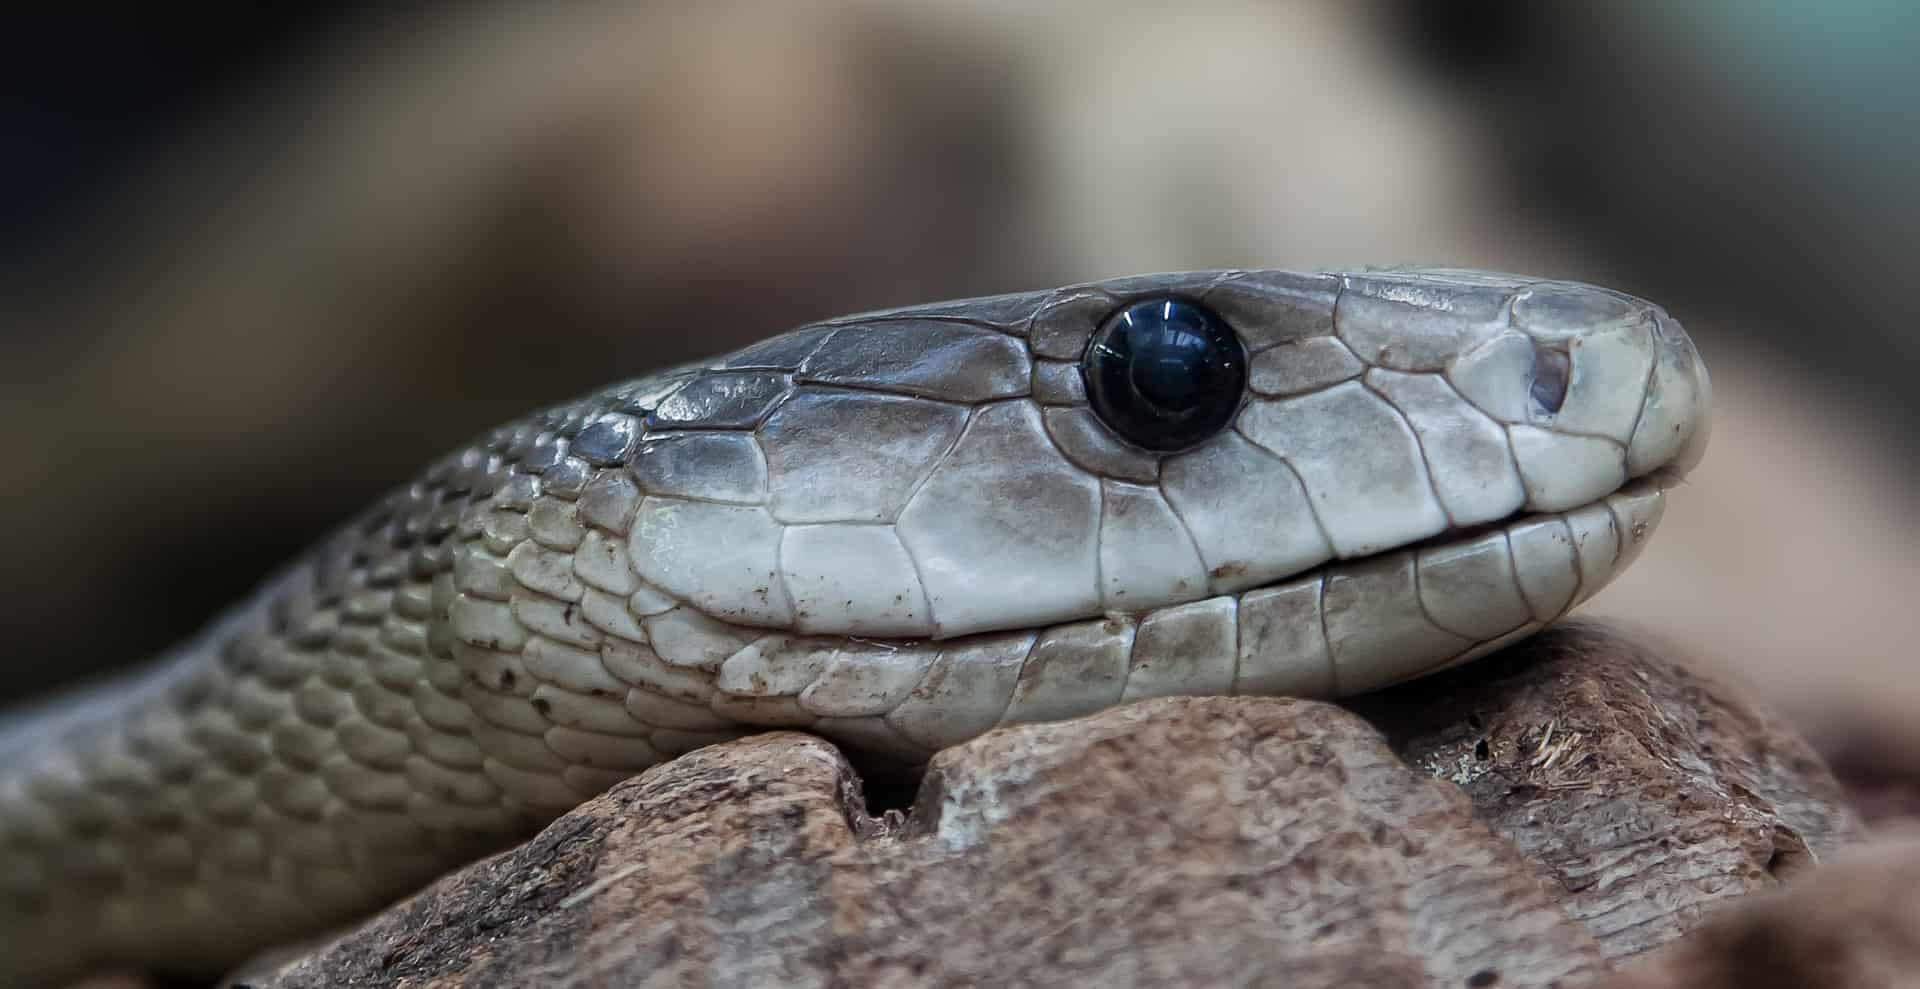 How poisonous is a Black Mamba?